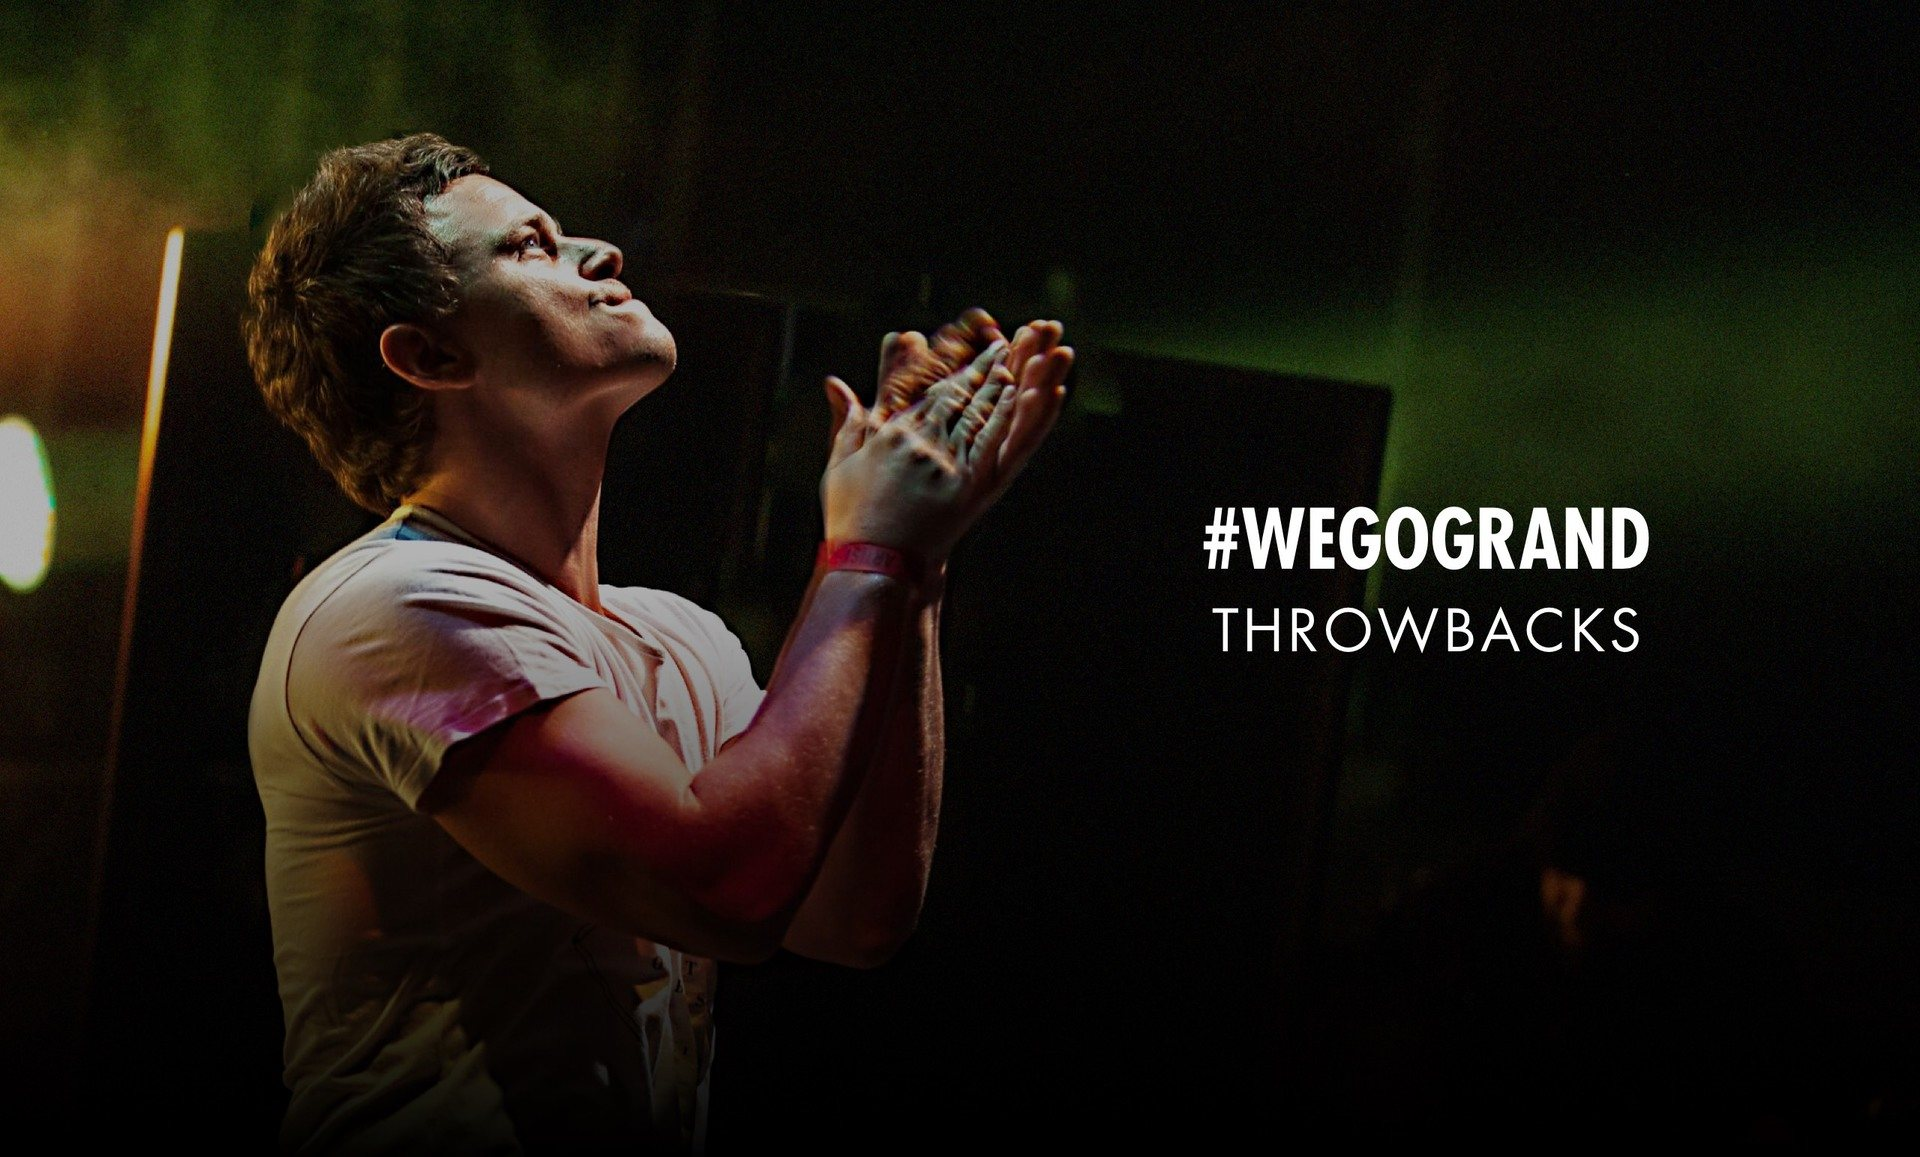 #WeGoGRAND Throwbacks